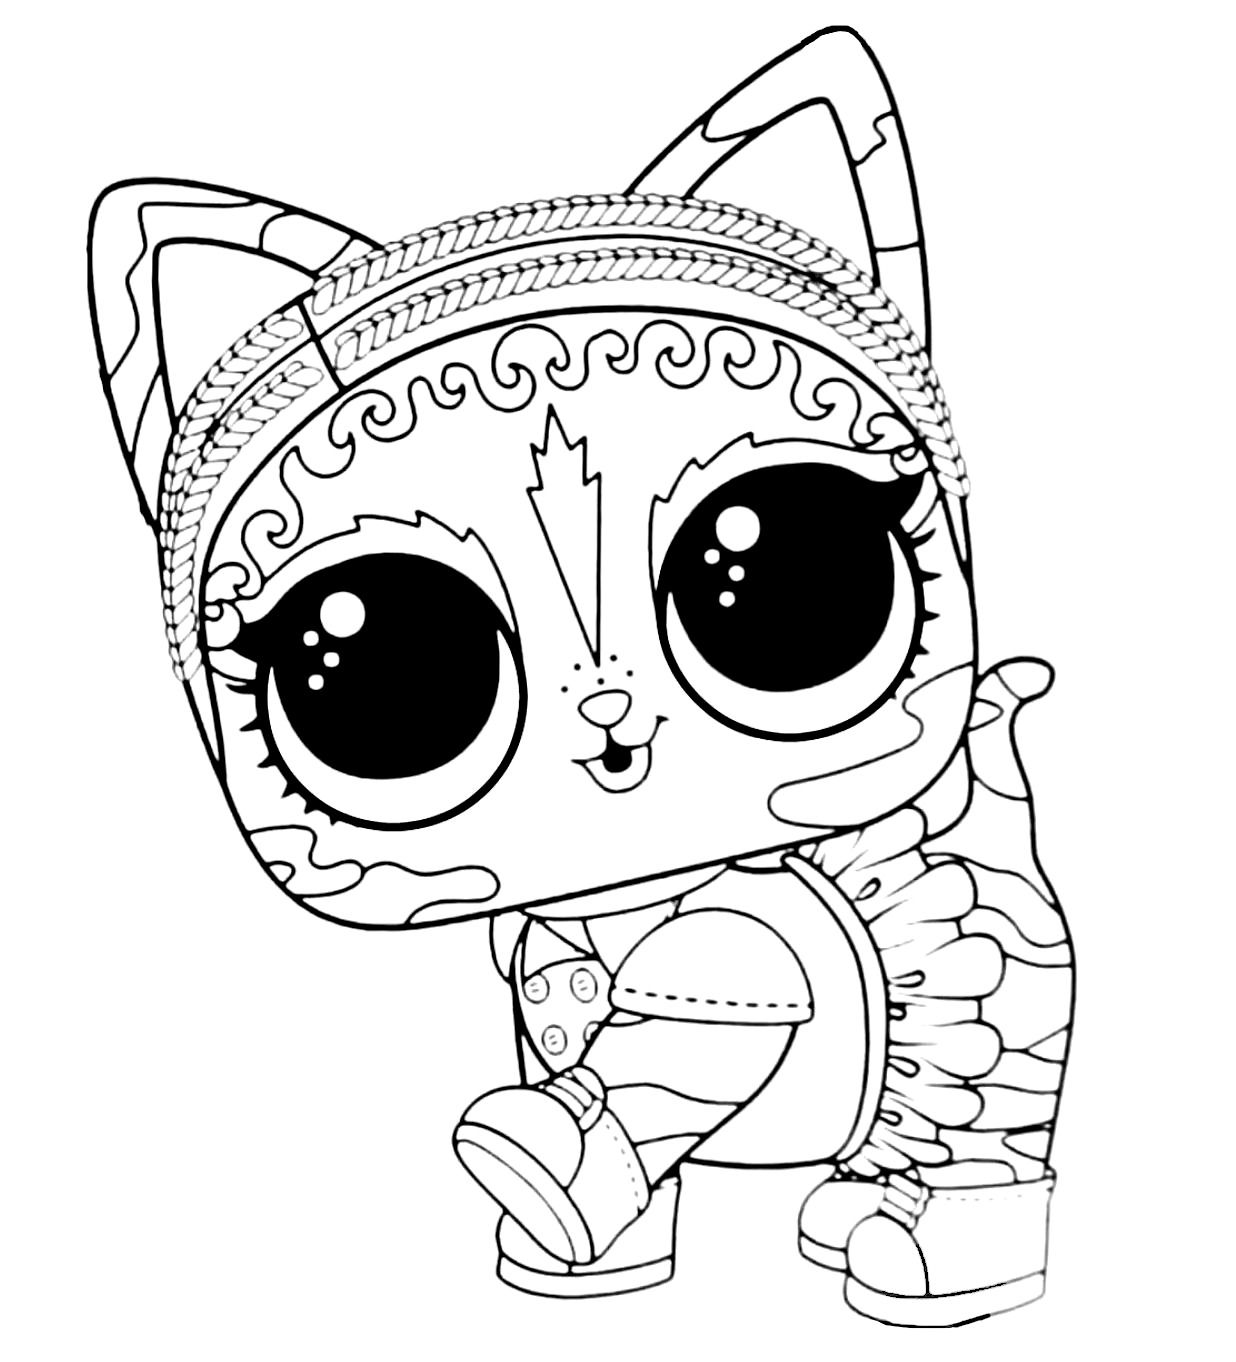 Lol Surprise Pet Coloring Page Agent Kitty Love Coloring Pages Cute Coloring Pages Coloring Pages